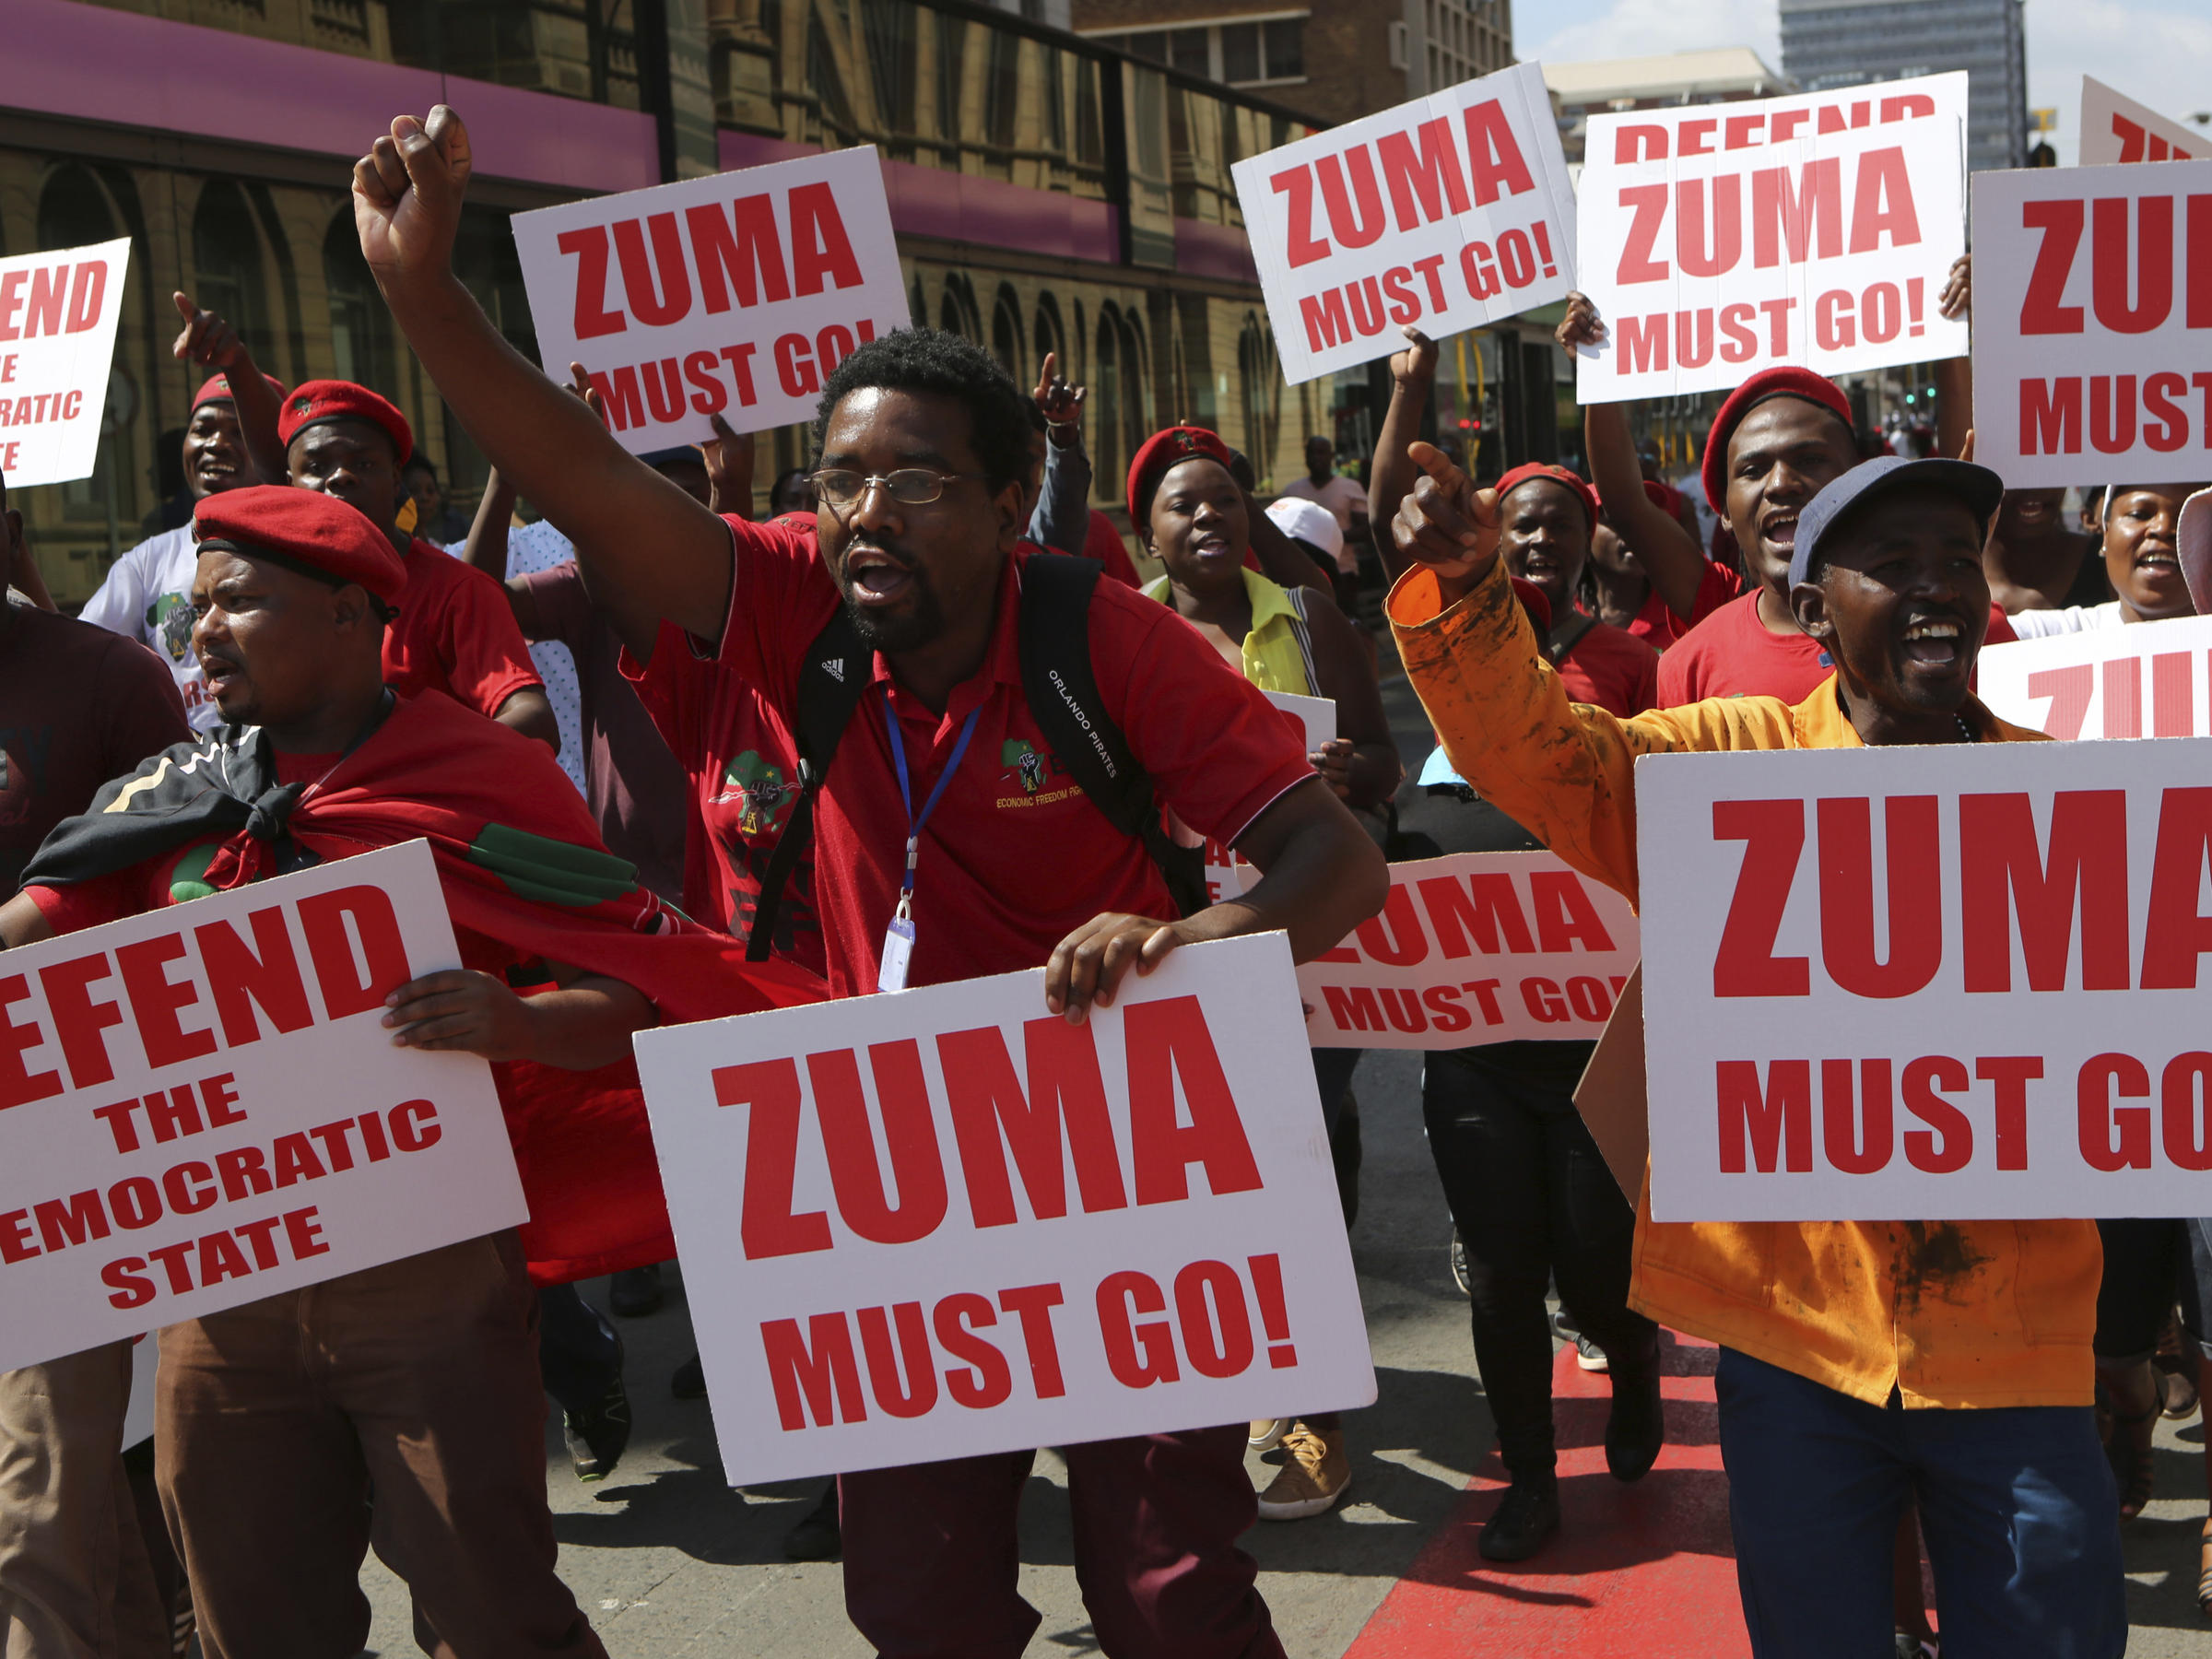 South Africa watchdog calls for probe on influence peddling in Zuma's govt